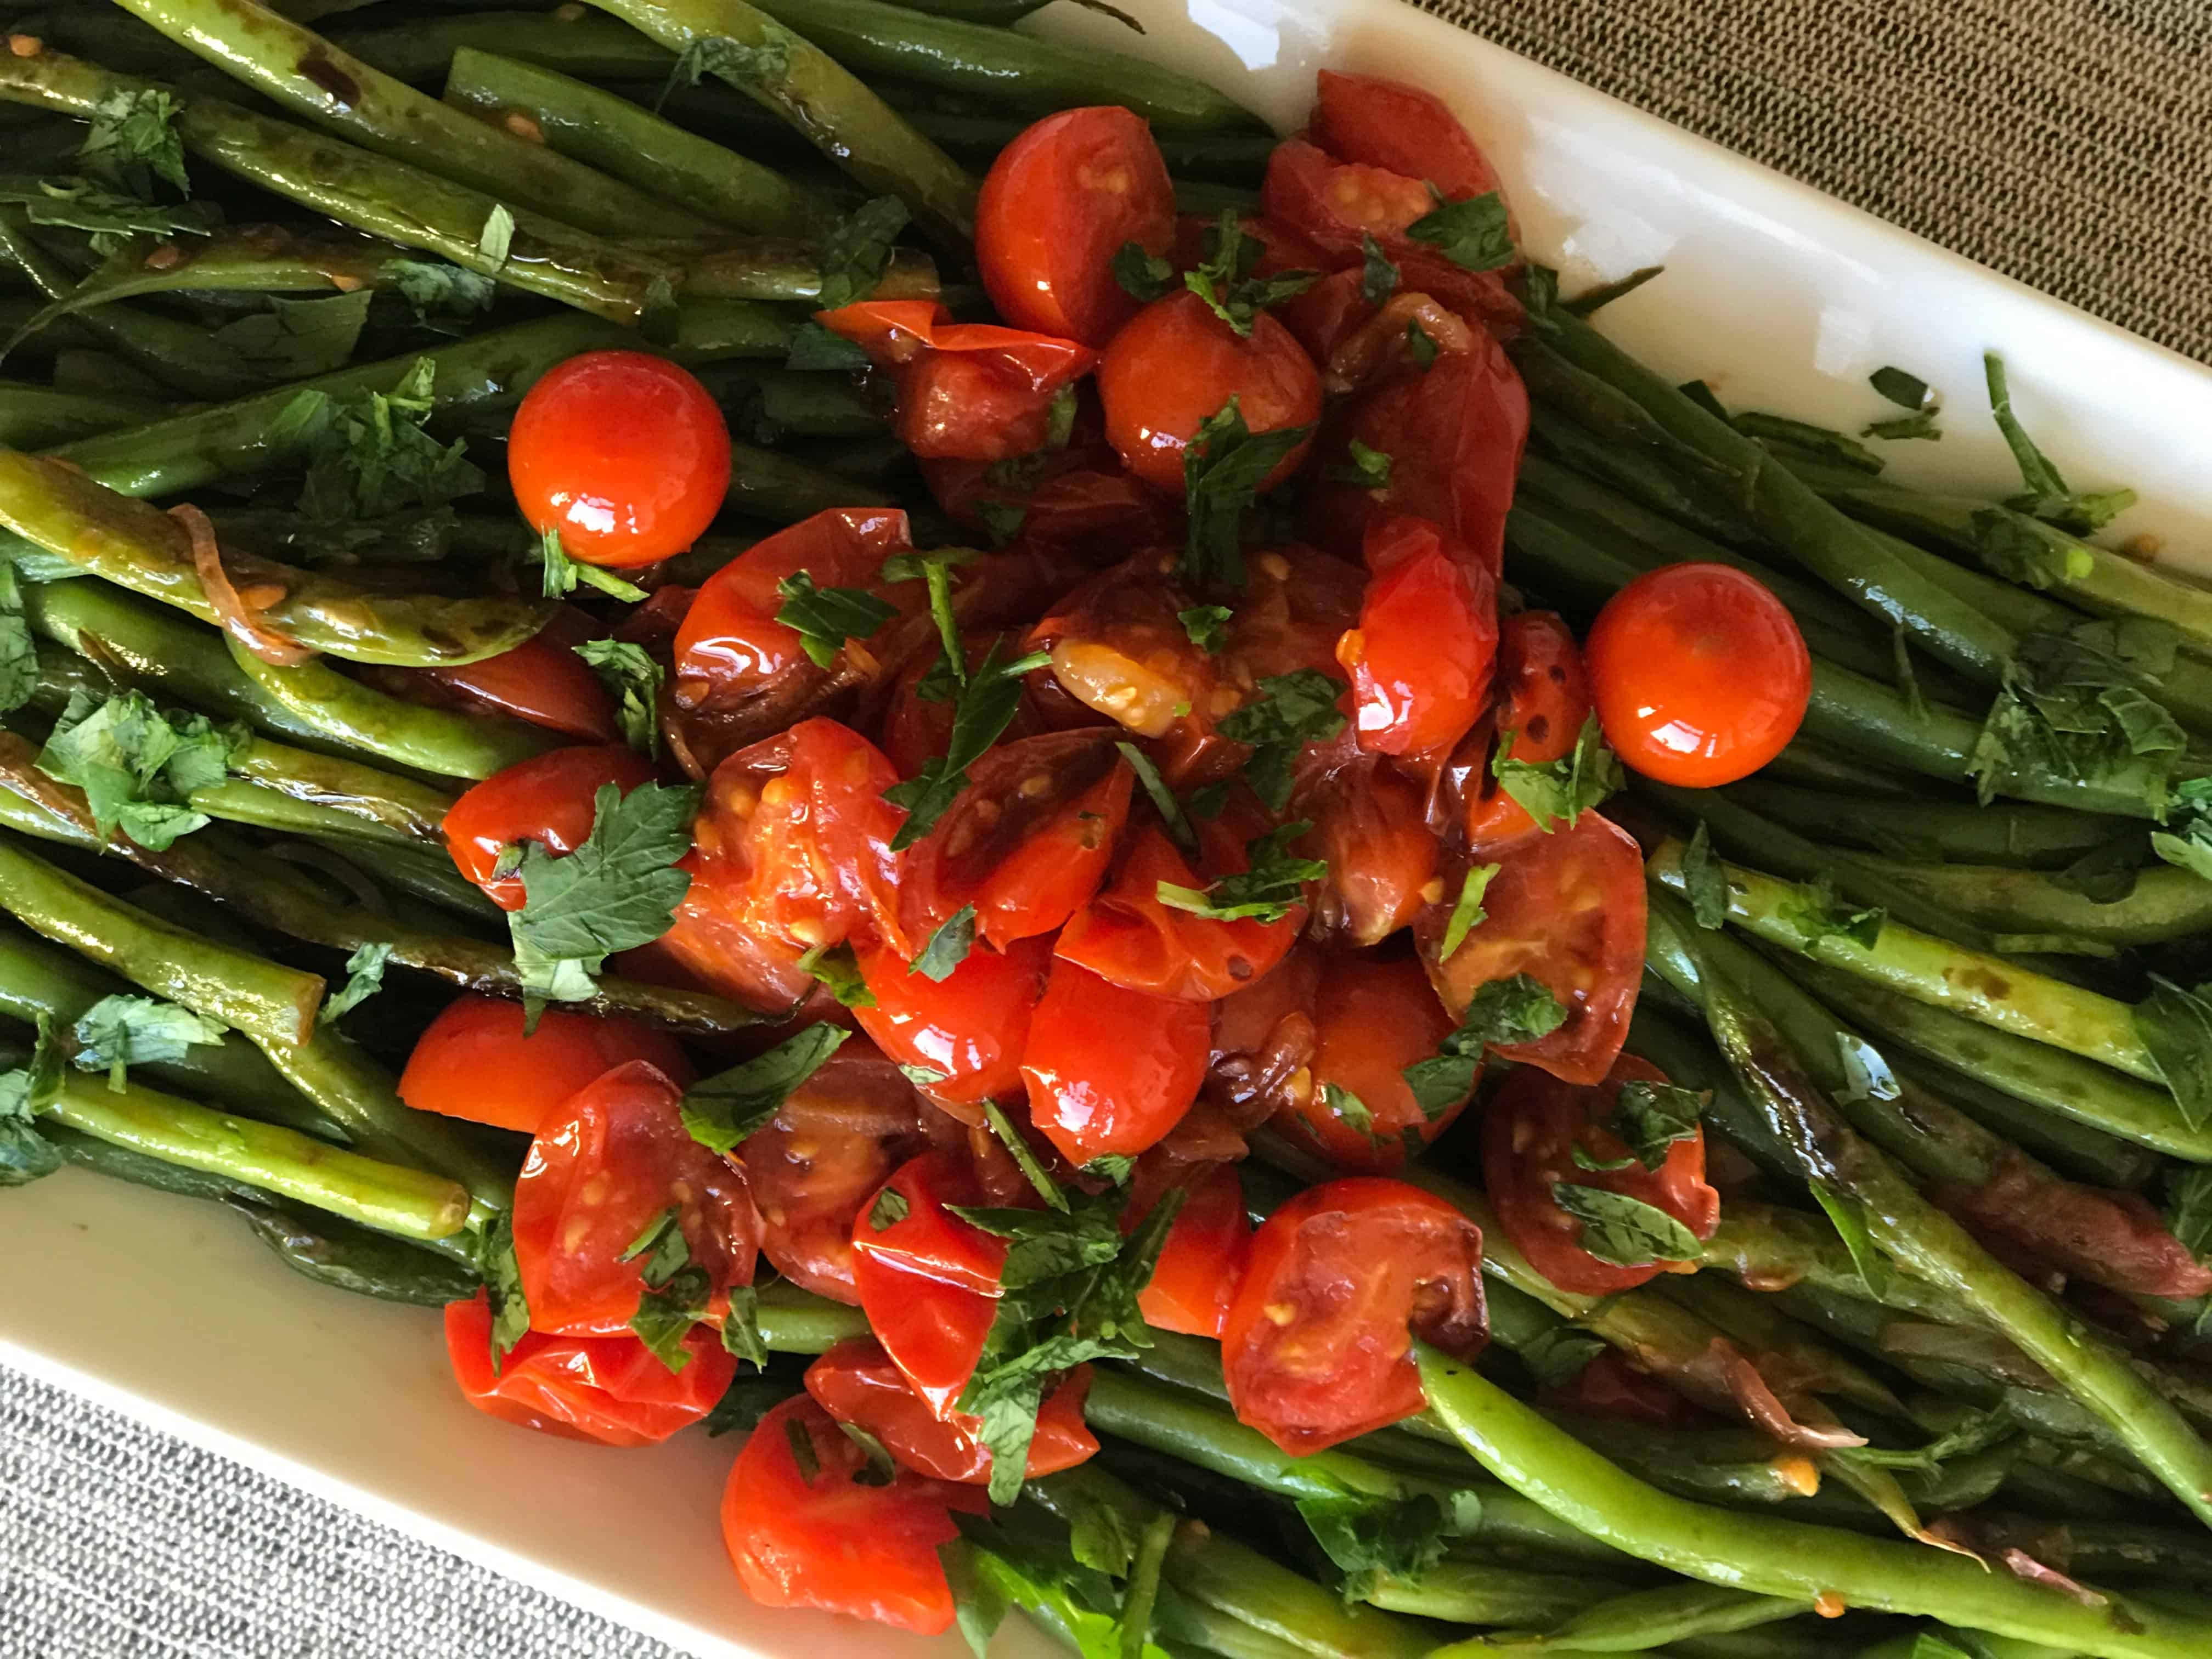 Seared Green Beans and Cherry Tomatoes with Balsamic Drizzle